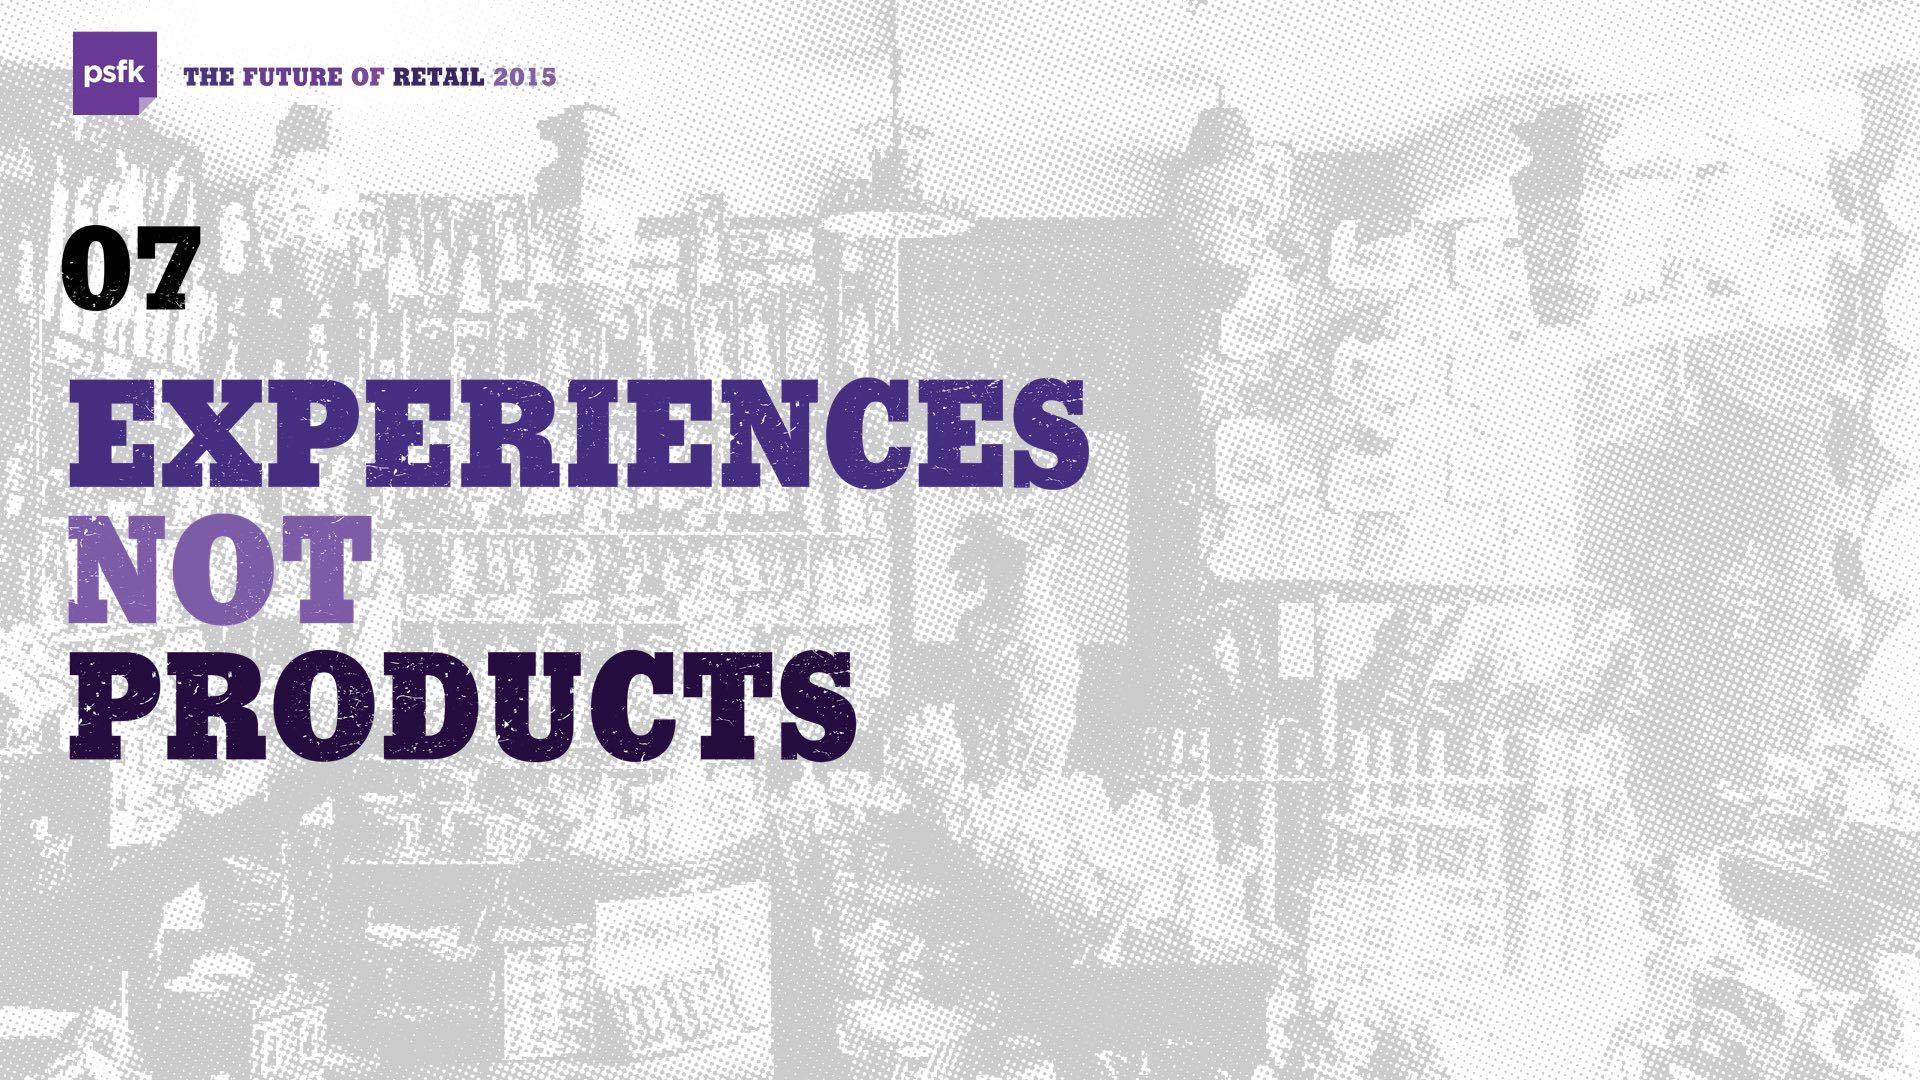 Immersing Shoppers in Product Experiences to Push Sales [Future of Retail]